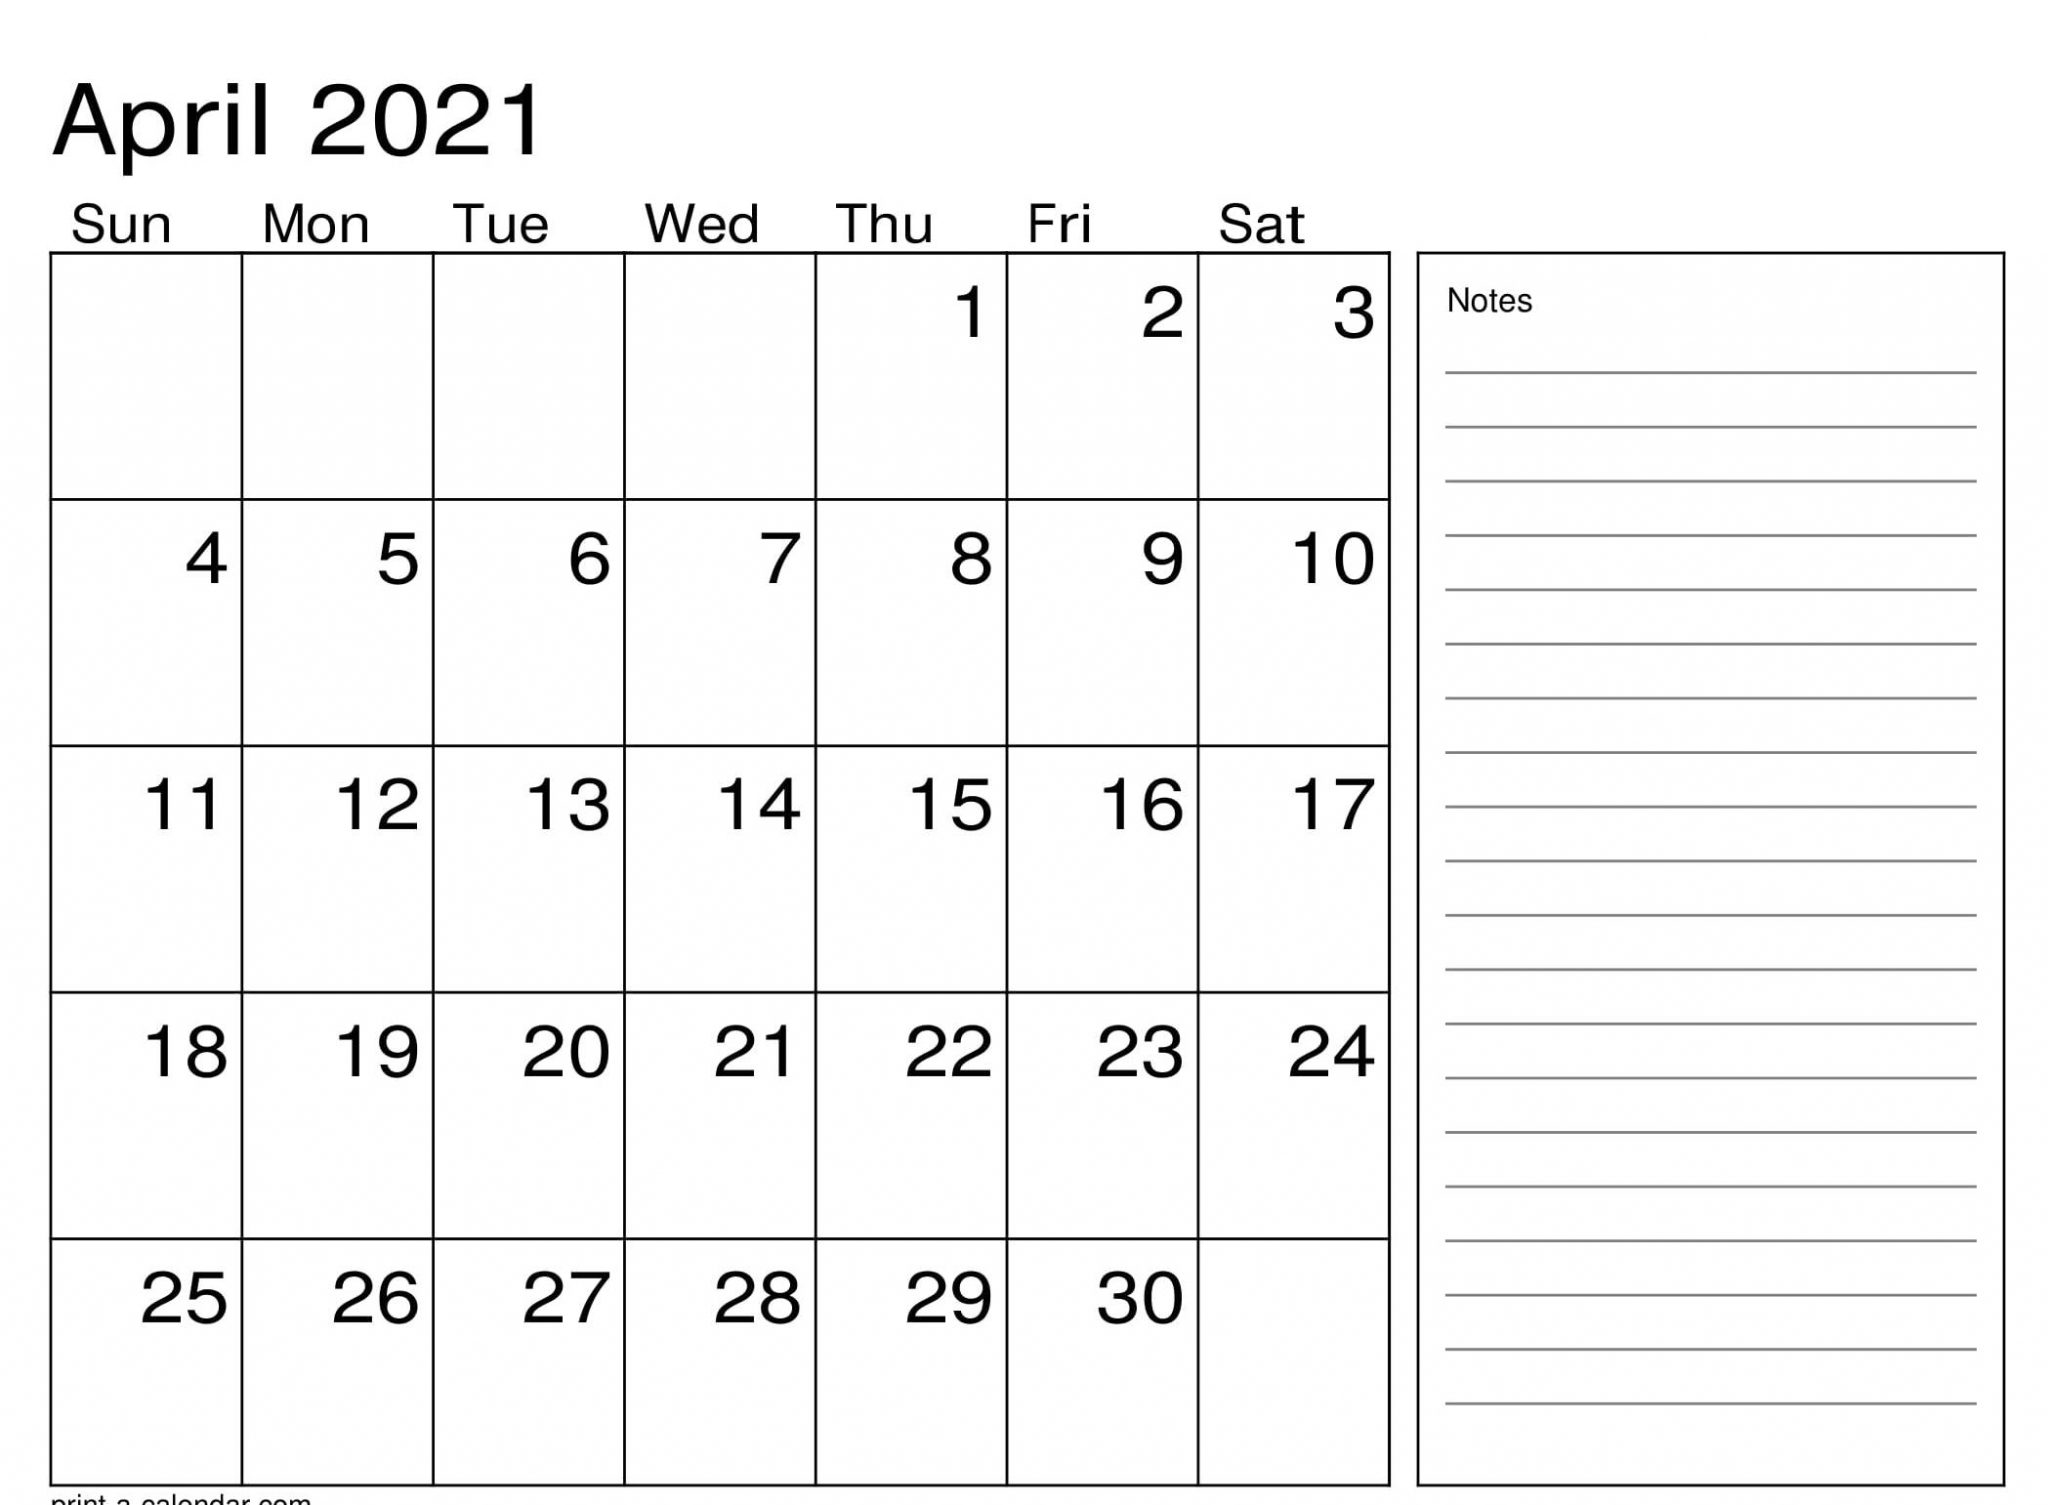 Printable Calendar 2021 April with Notes